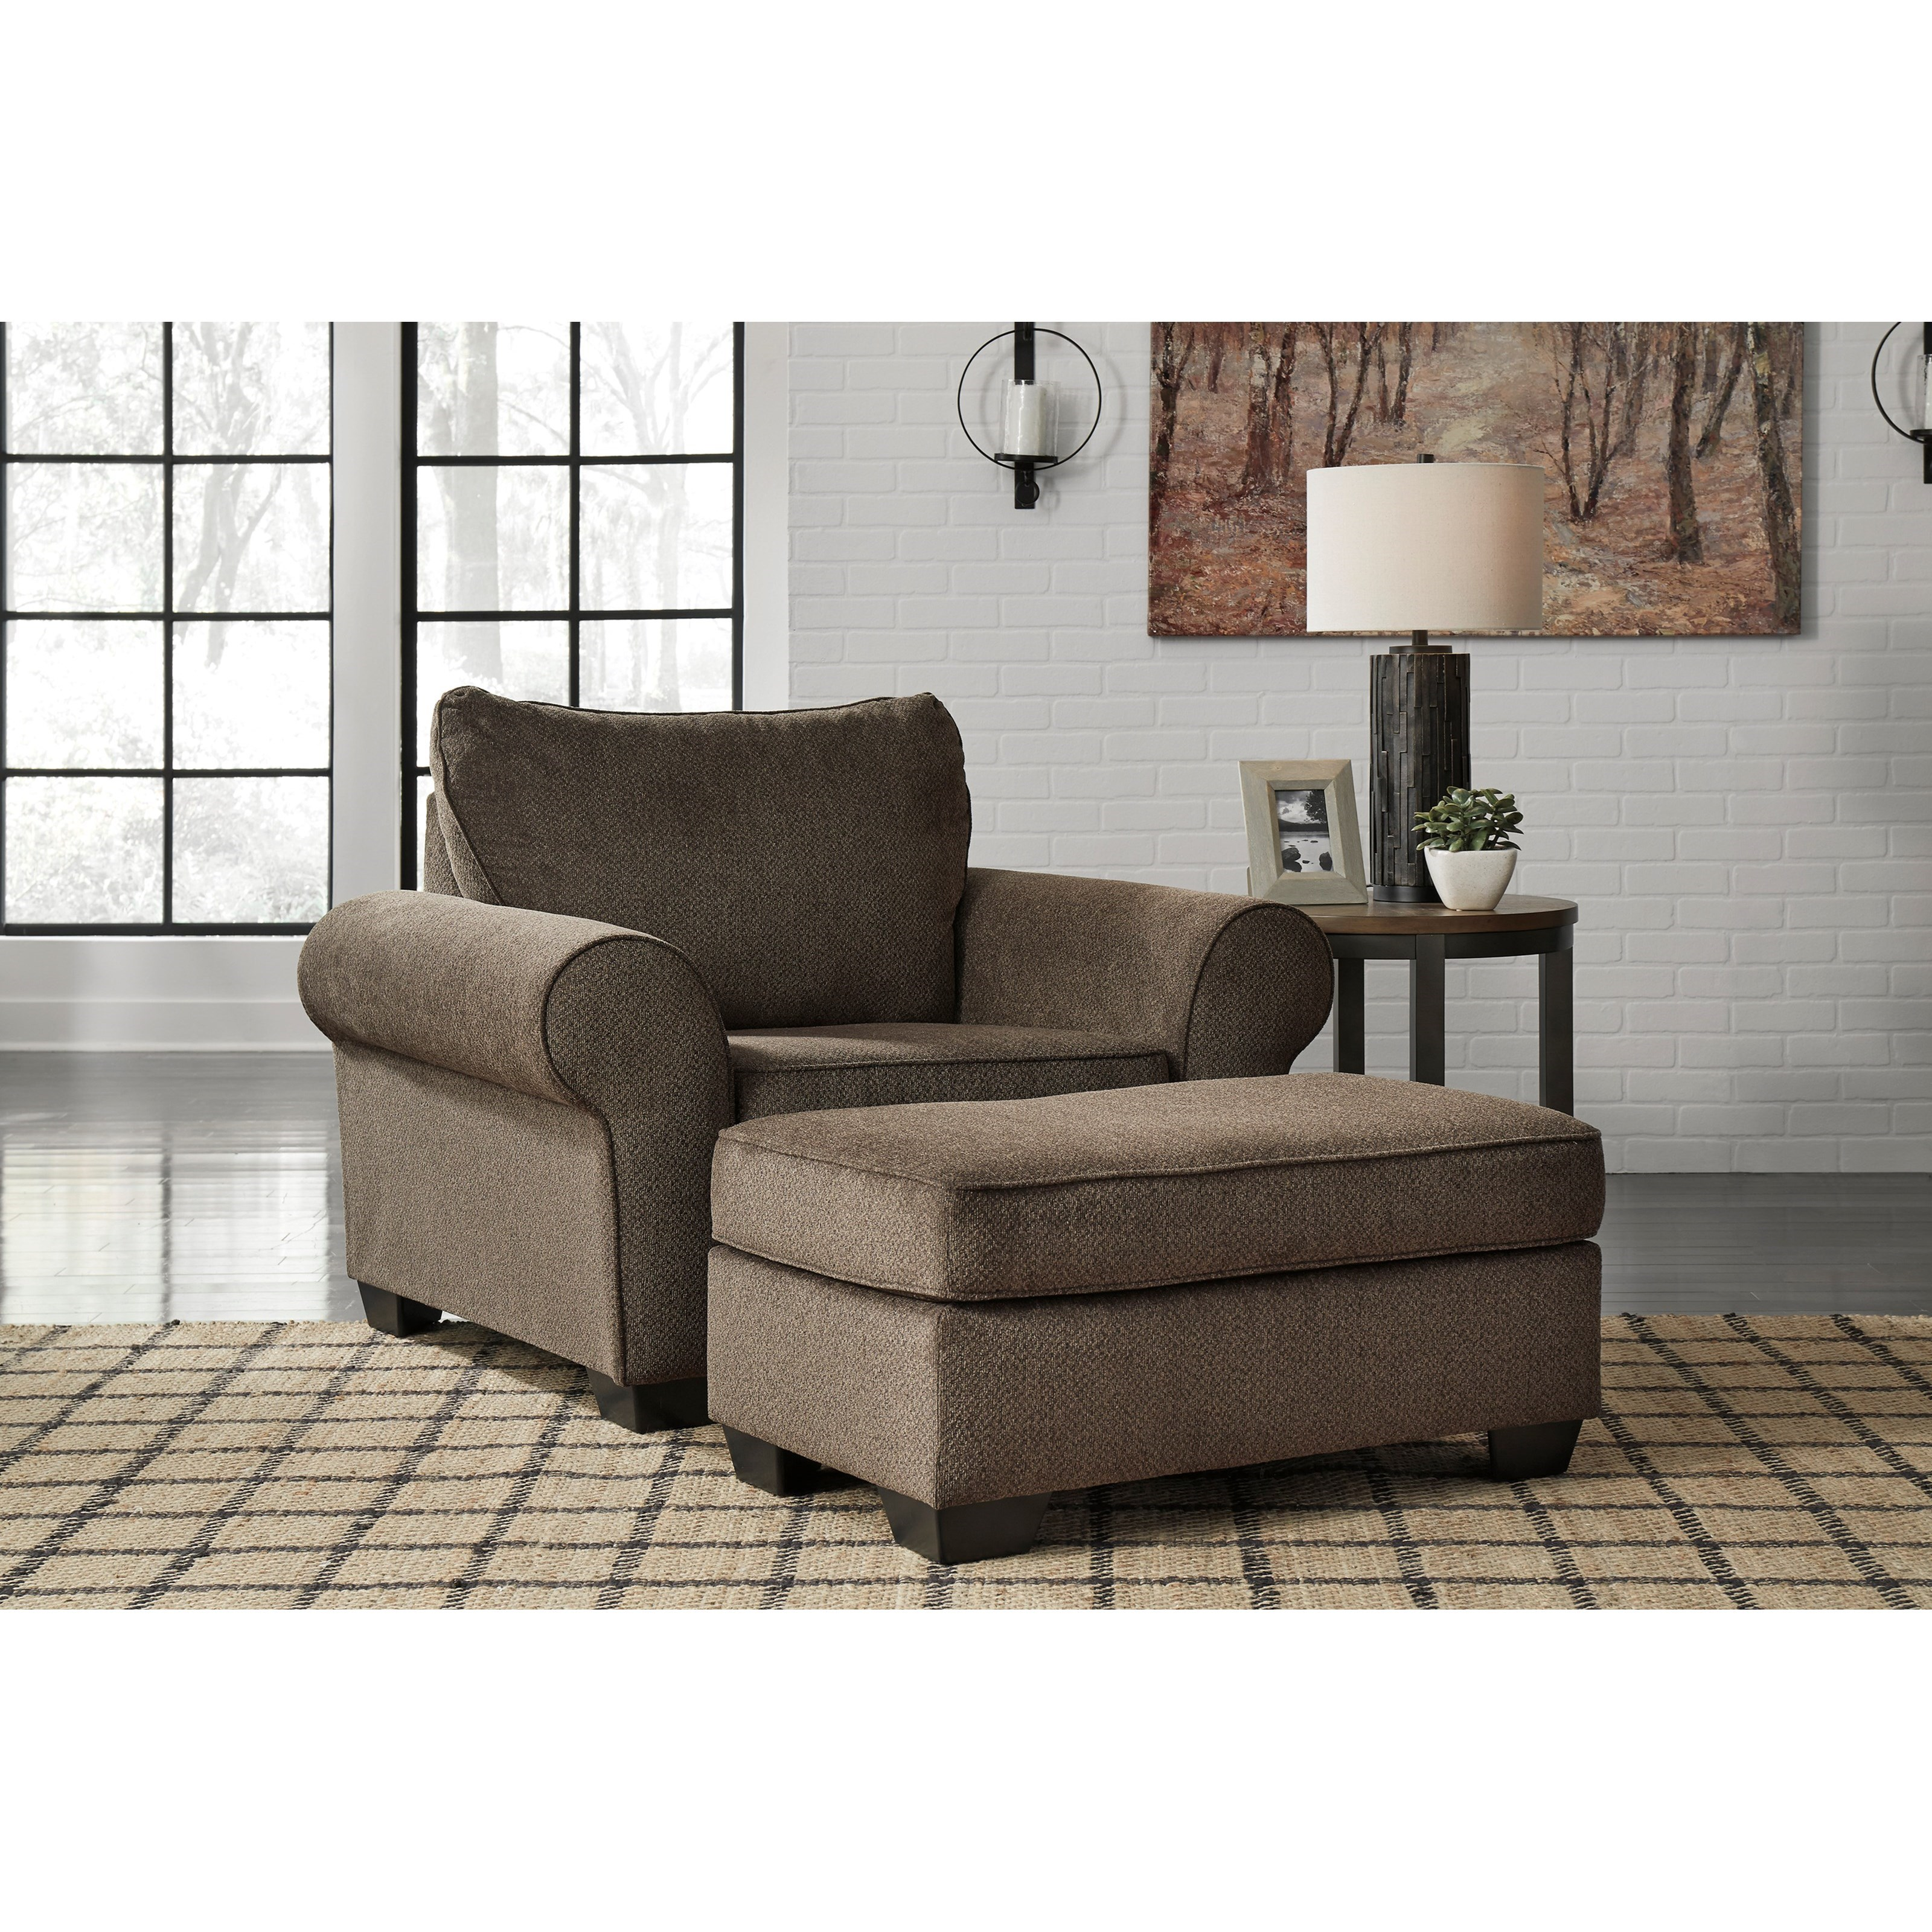 Nesso Chair & a Half and Ottoman by Benchcraft at Walker's Furniture